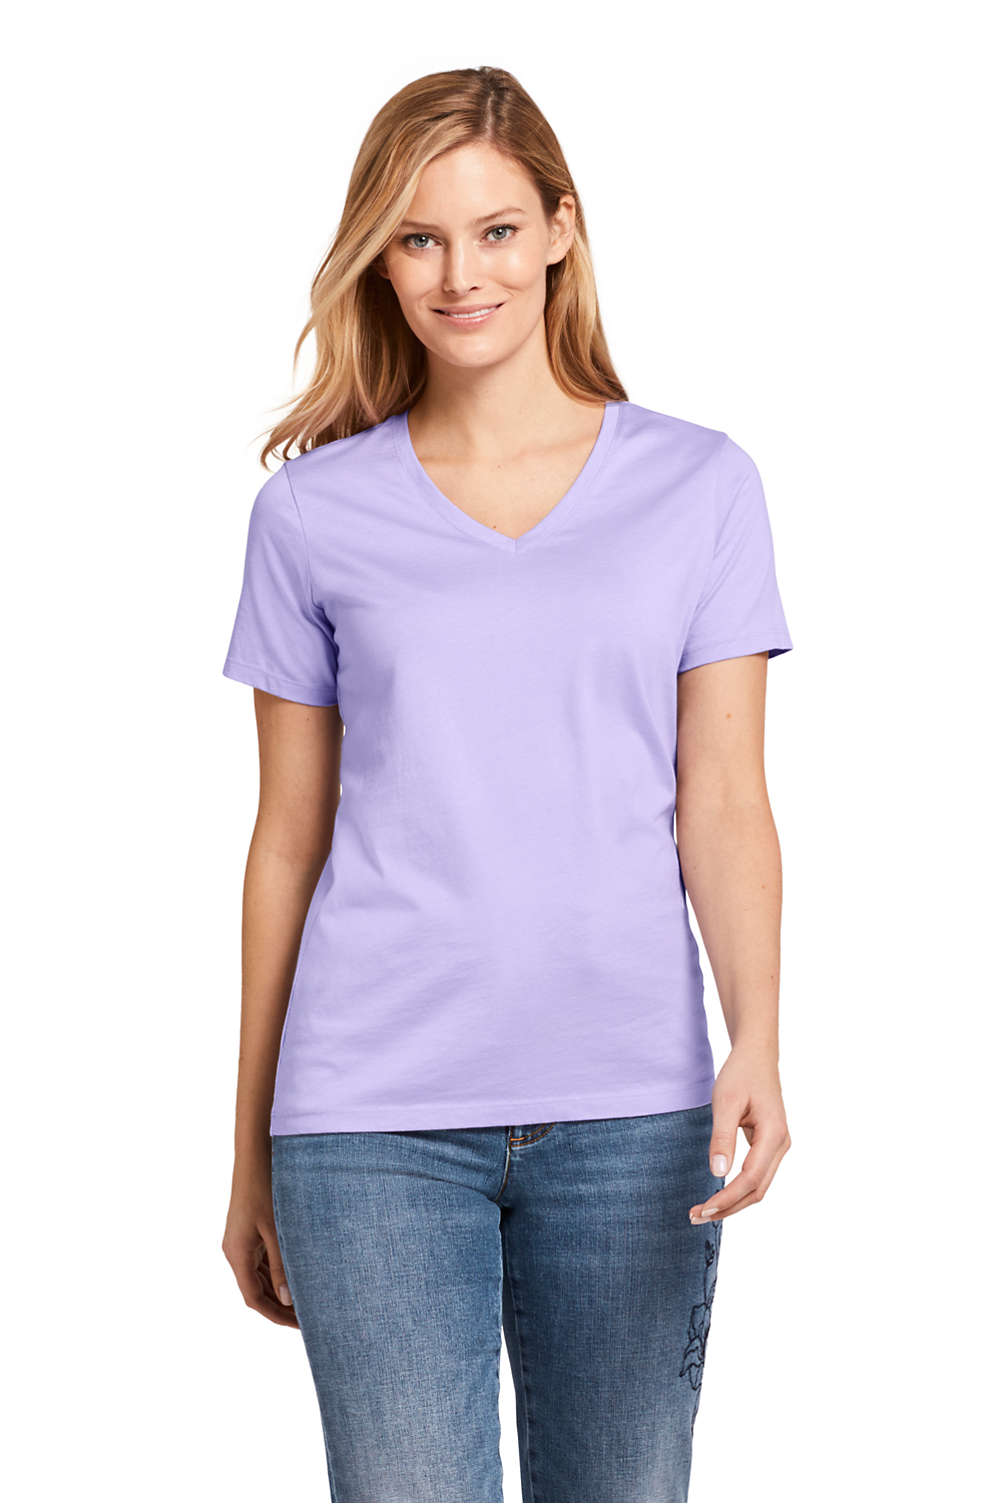 Women s Supima Cotton Short Sleeve T-shirt - Relaxed V-neck from ... 7078ac87b3